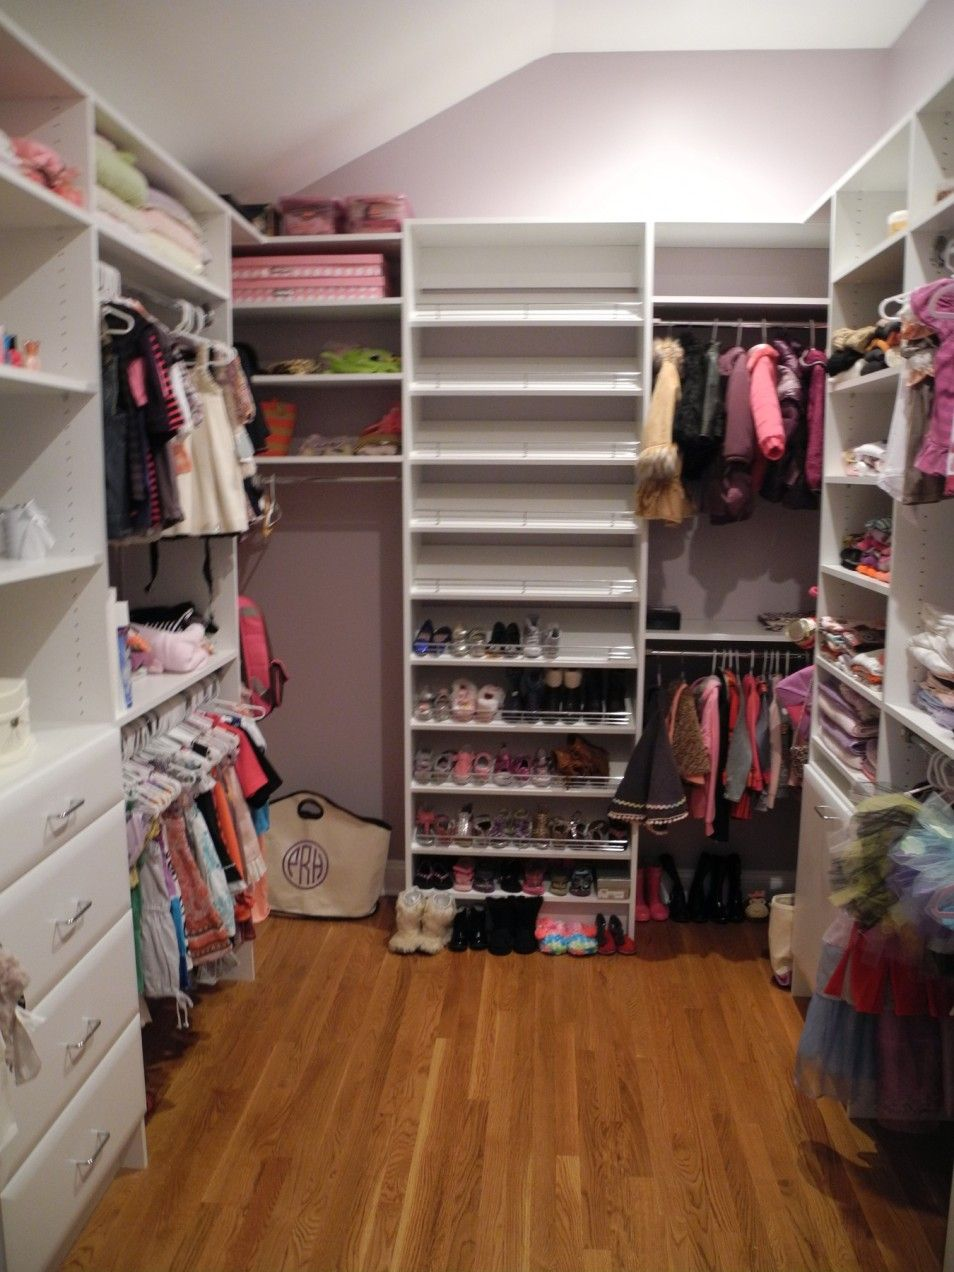 The Beautiful And Modern Girl Closet Ideas At Interior Home Room Simple Design Arrangement Small Wa Homemade Closet Organizing Walk In Closet Home Depot Closet